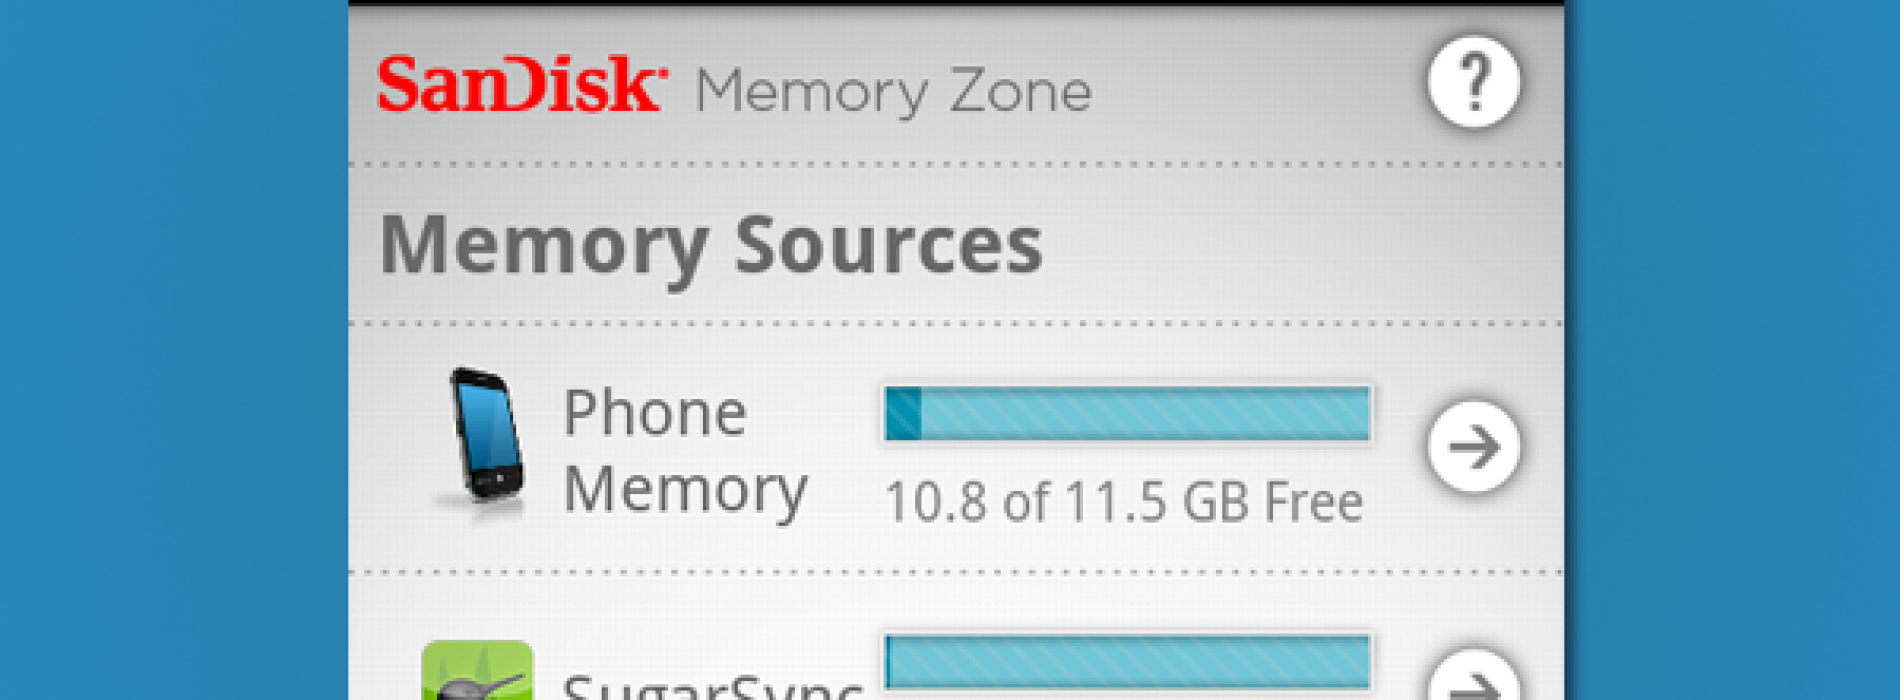 SugarSync integrates SanDisk for improved file organization